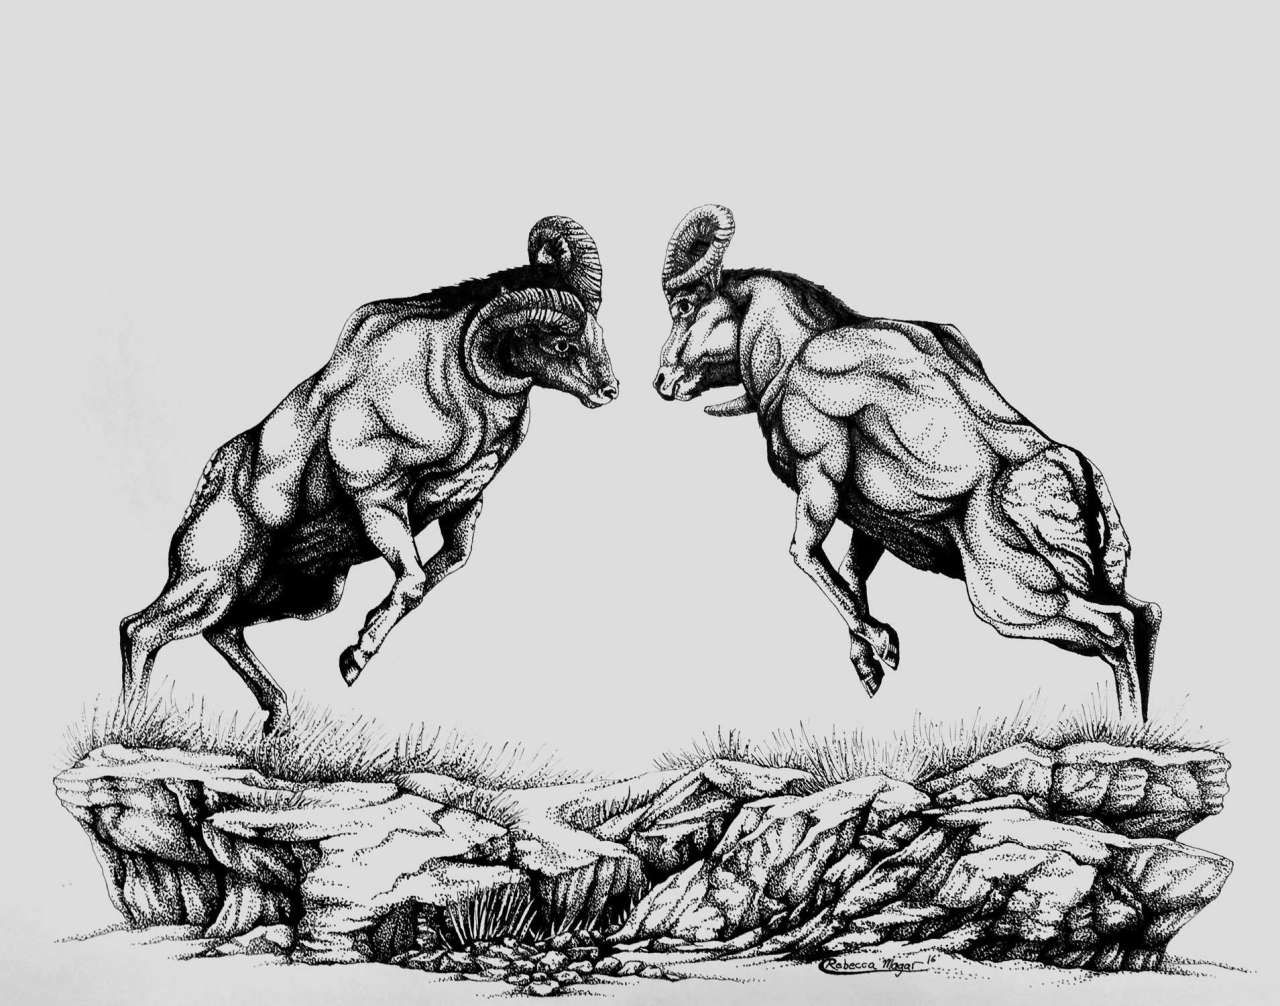 Drawing Of Two Bighorn Sheep Rams Fighting By Rebecca